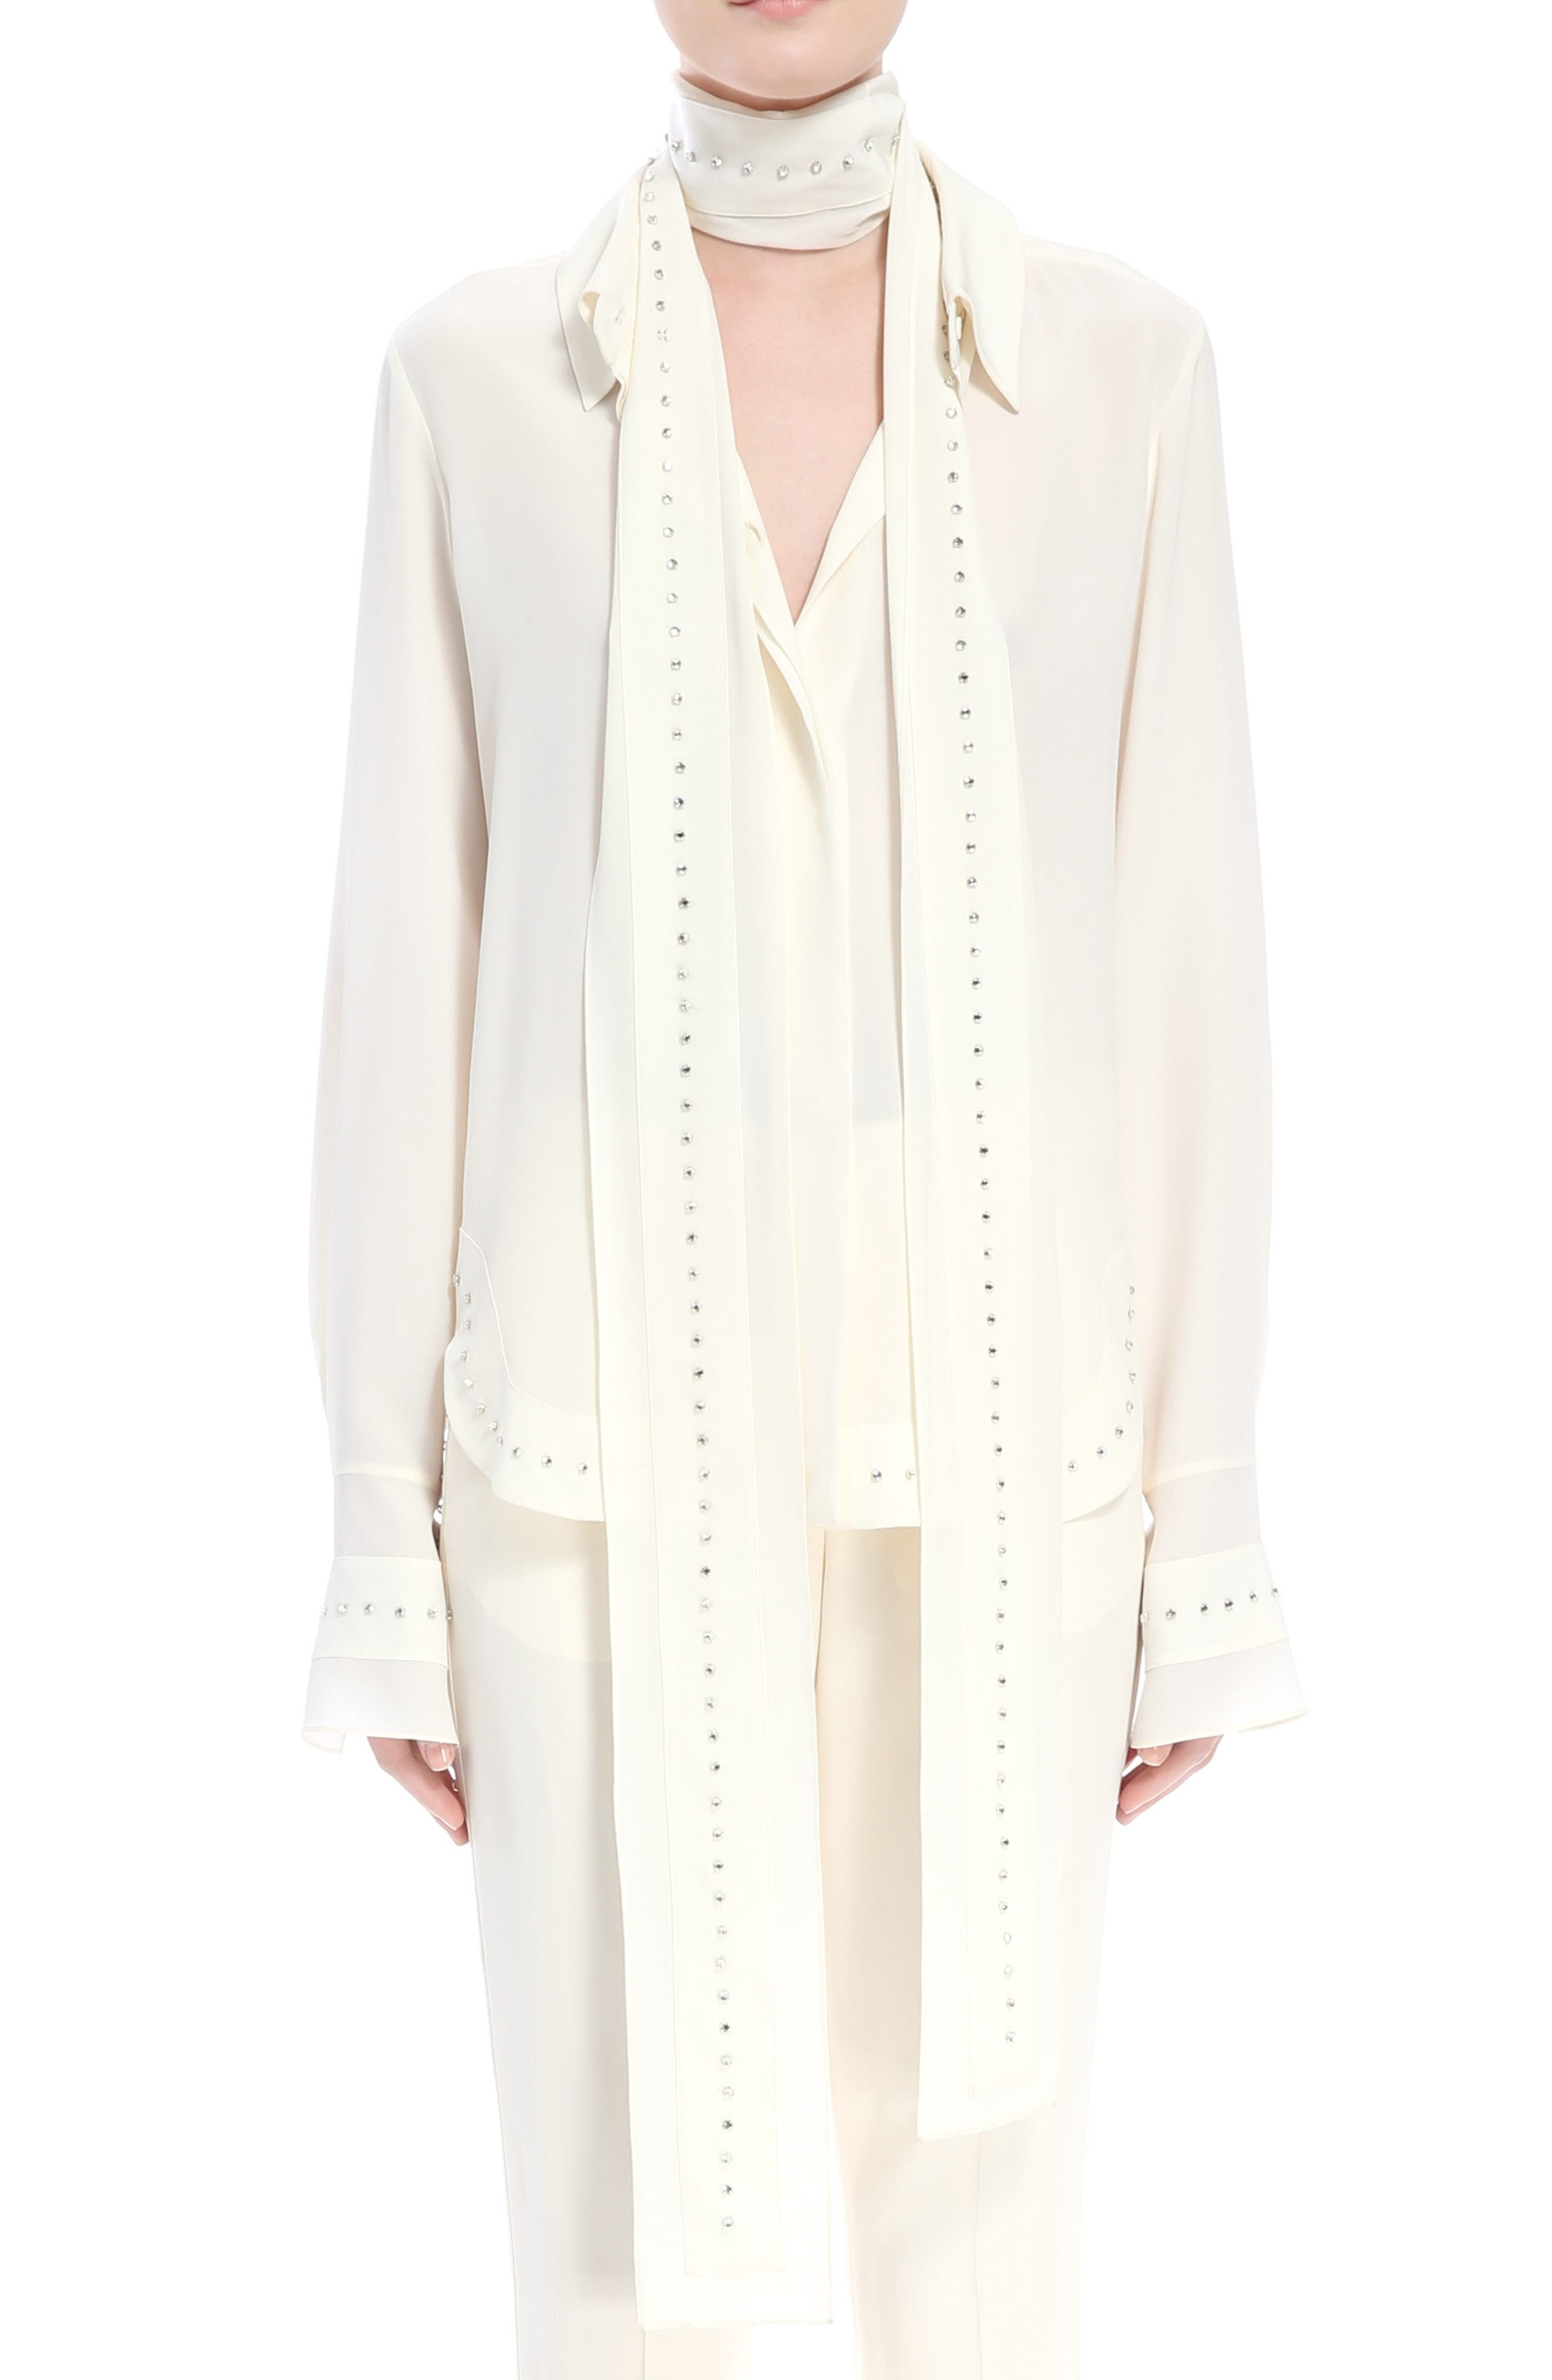 Chloé Rhinstone Trim Silk Shirt with Scarf